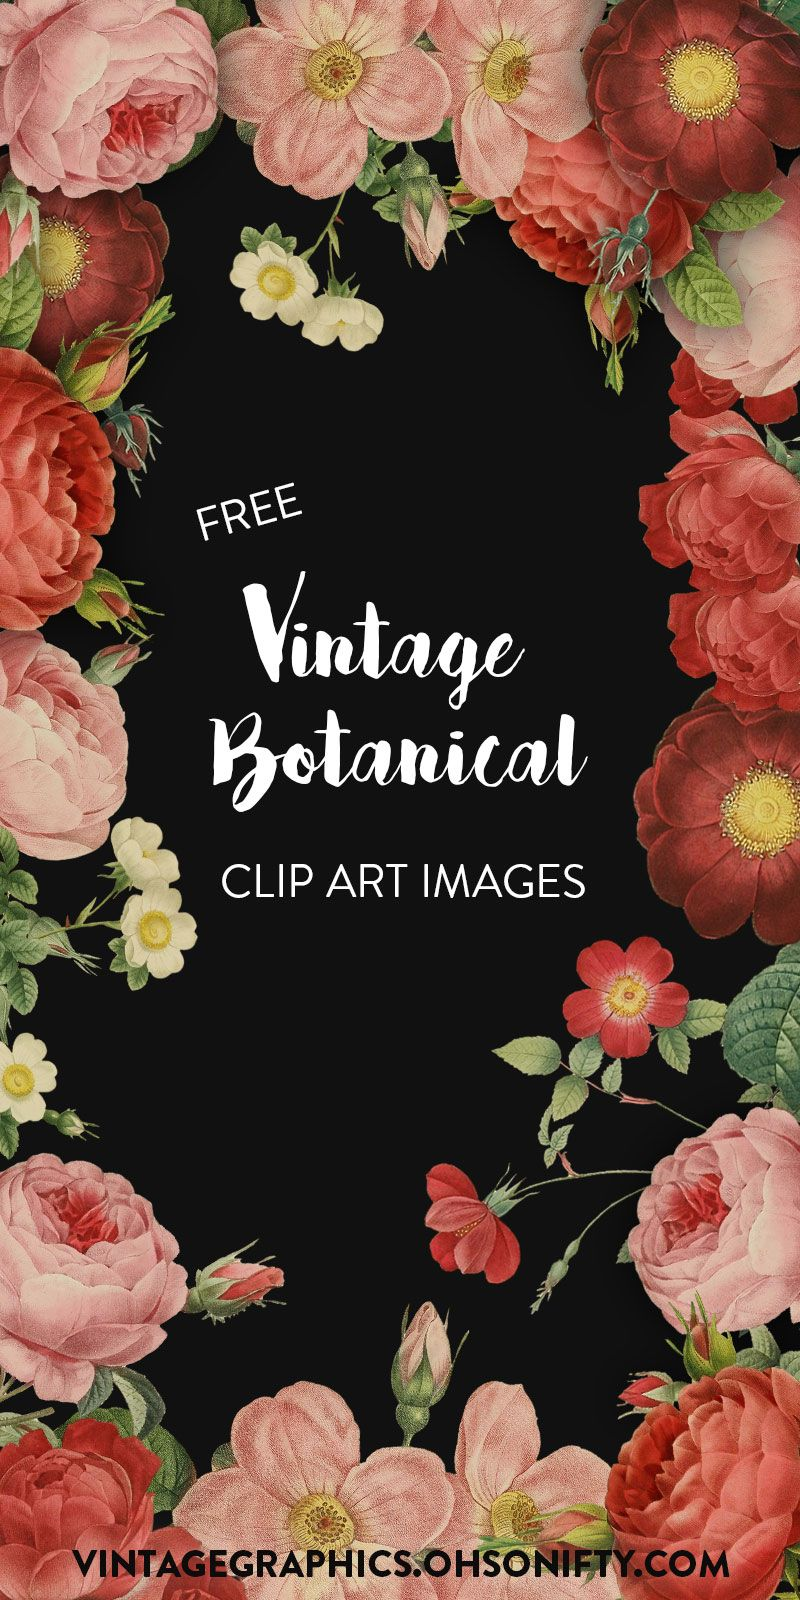 wedding invitation decoration clip art%0A Free Clipart Images   Vintage Botanical Roses and Flowers   http   vintagegraphics